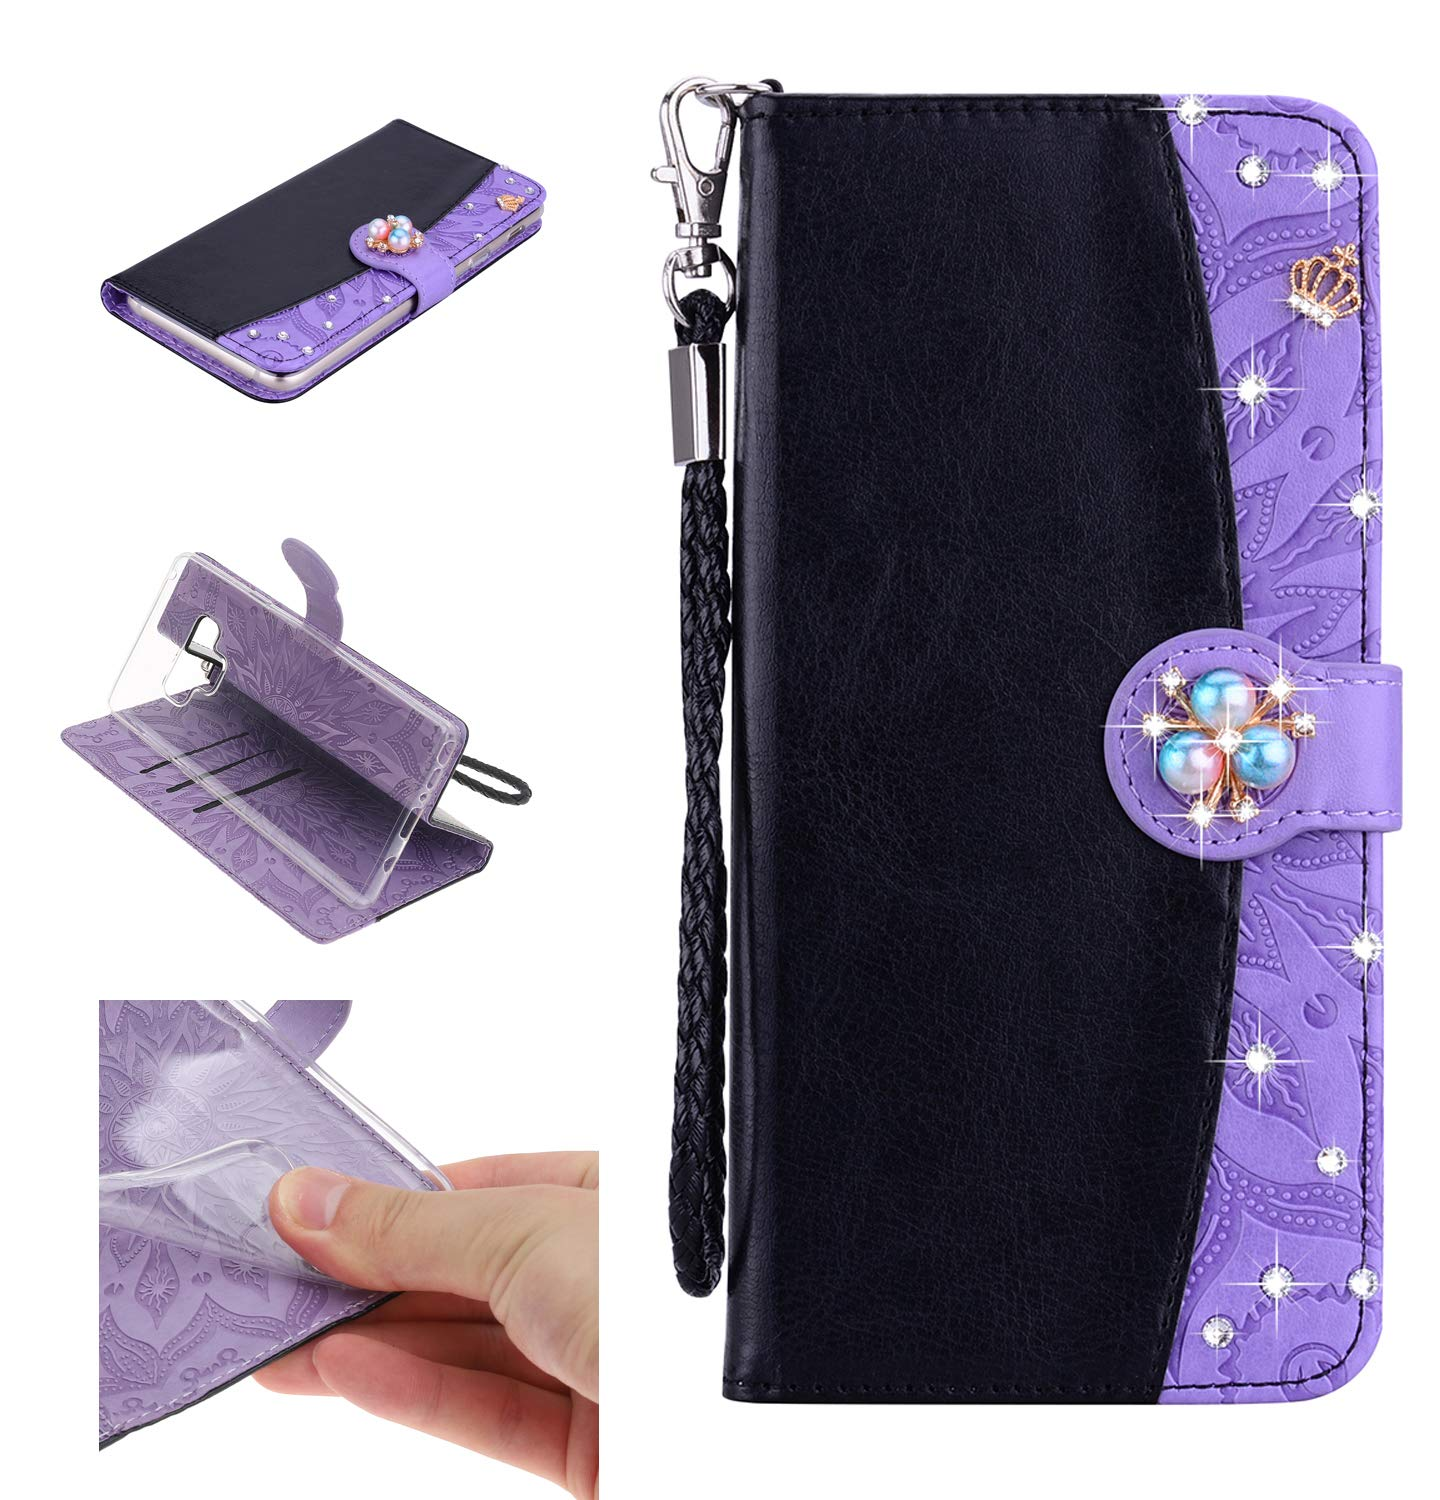 Amocase Strap Wallet Case with 2 in 1 Stylus for Samsung Galaxy Note 9,3D Diamond Crown Color Block Premium Beaded PU Leather Stand Clear Slicone Back Case for Samsung Galaxy Note 9 - Black Purple